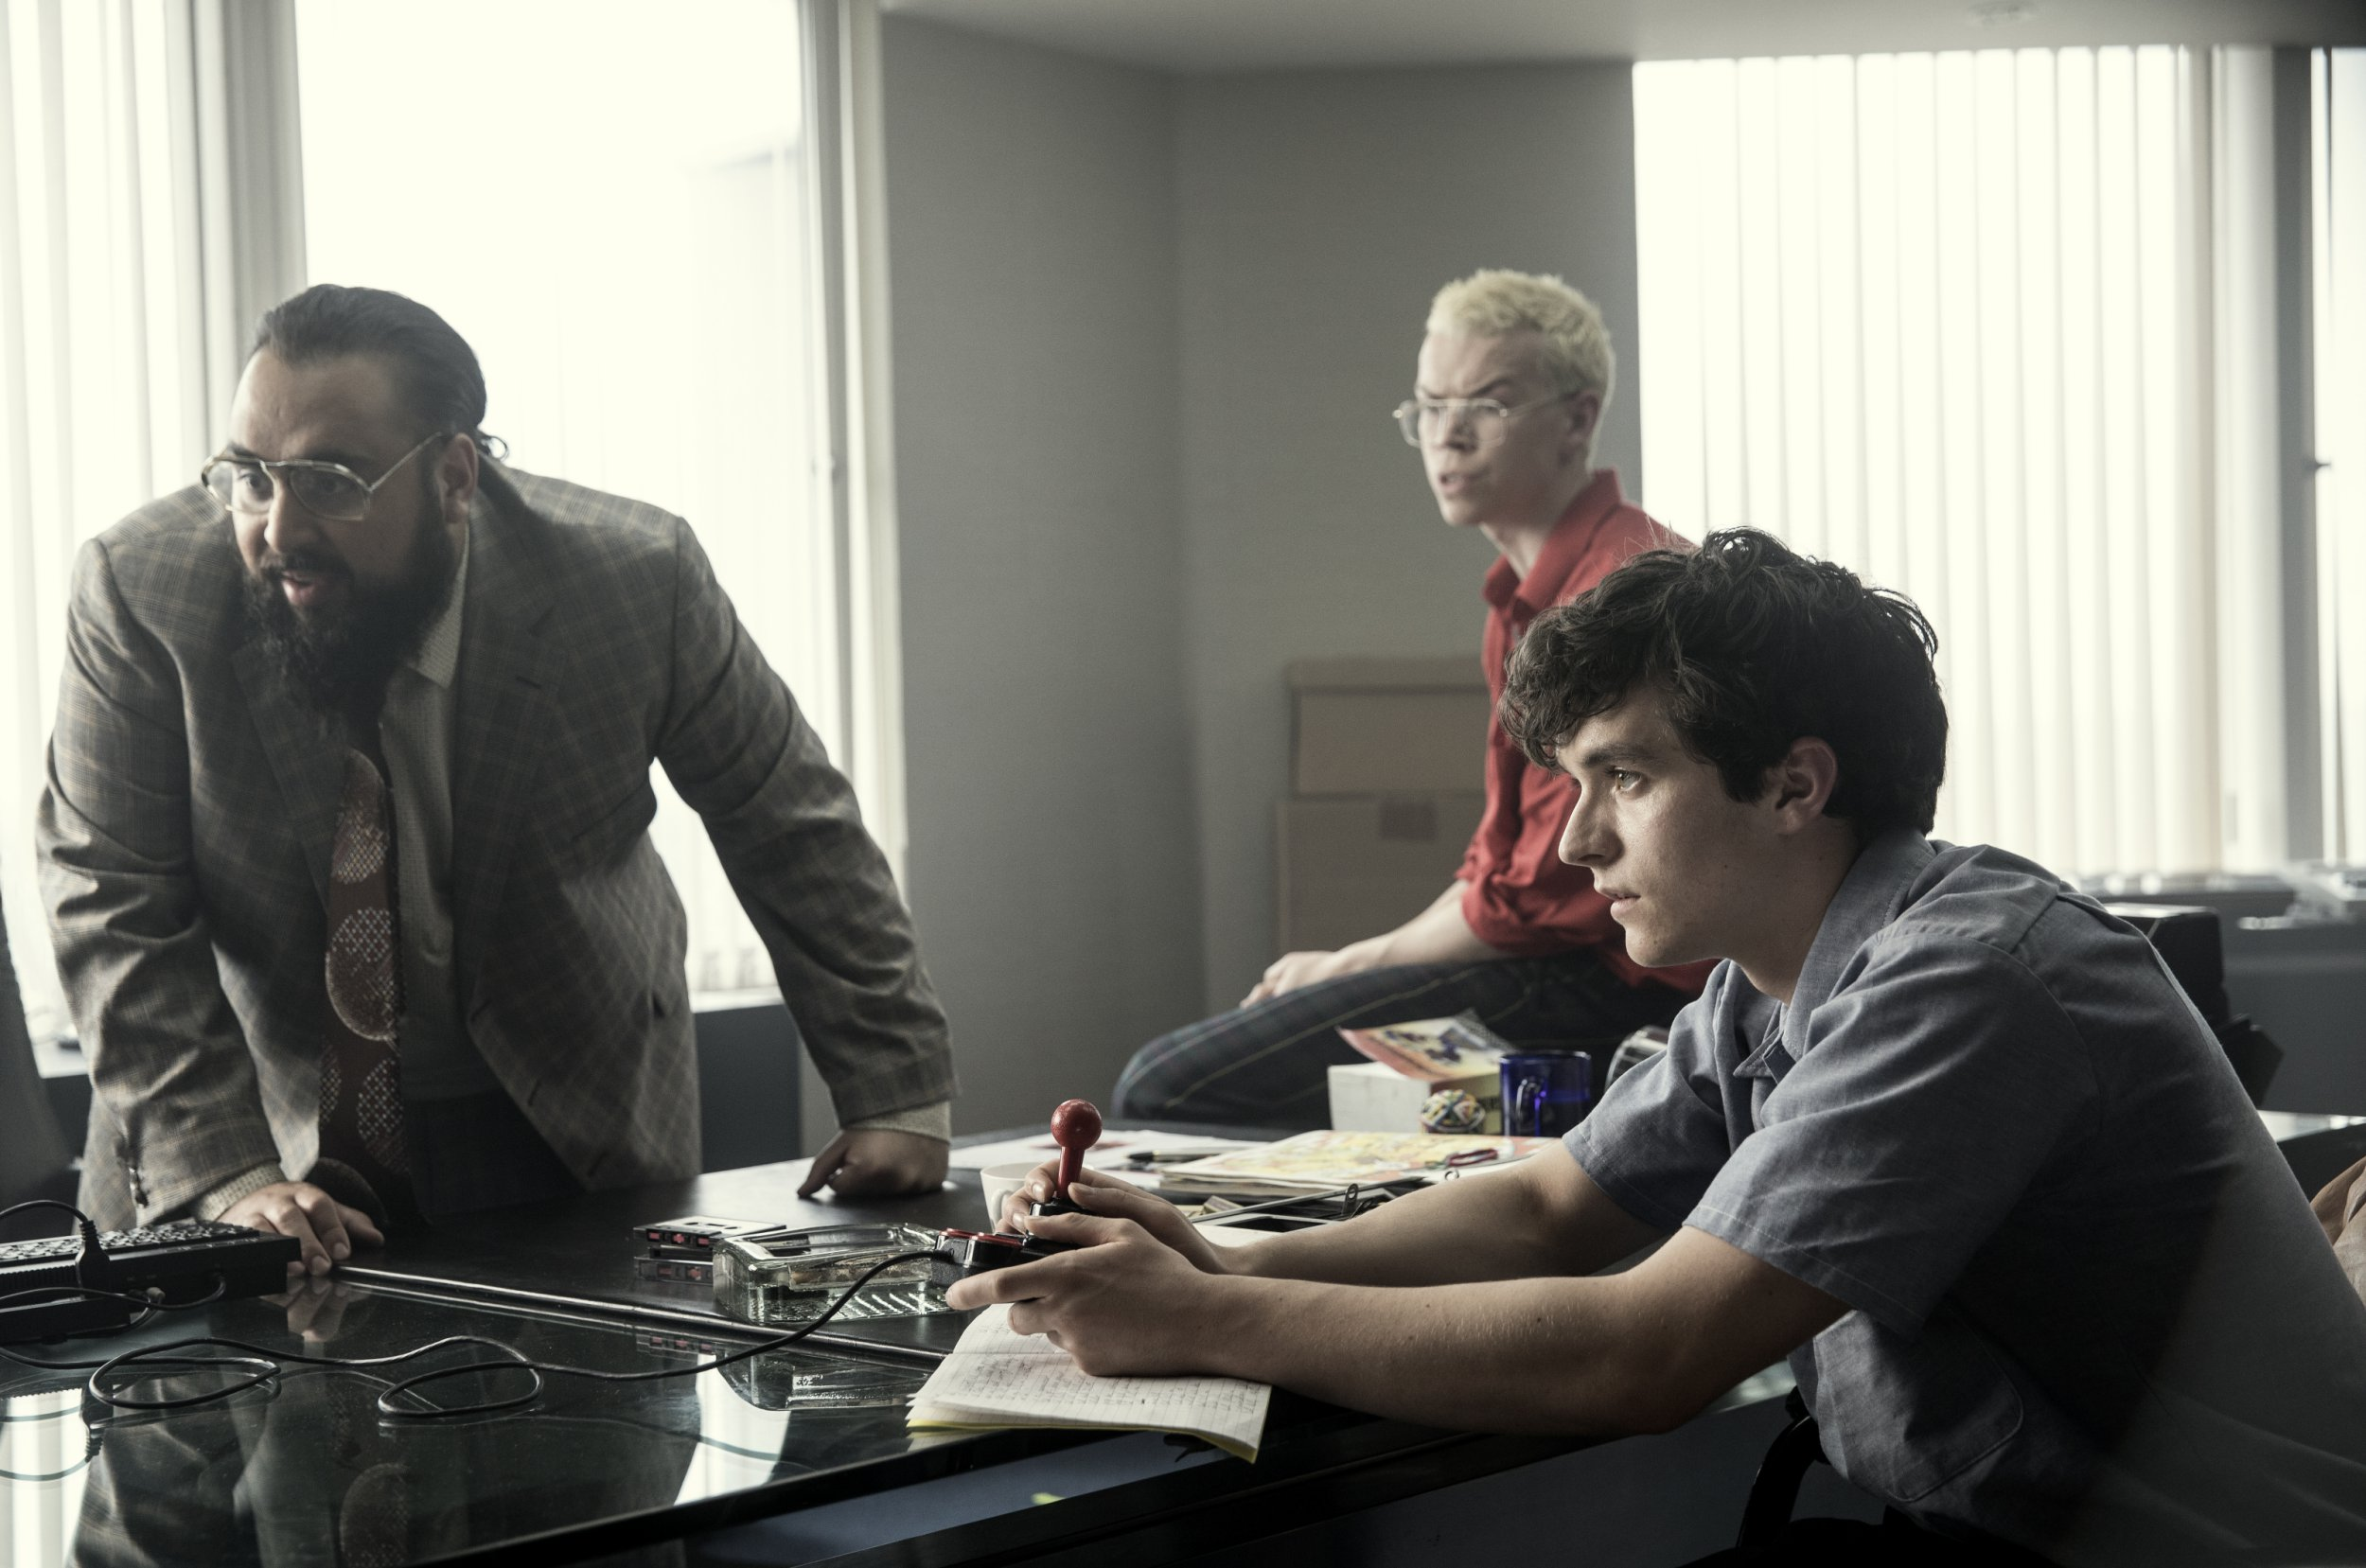 Netflix planning way more interactive shows after Black Mirror: Bandersnatch success